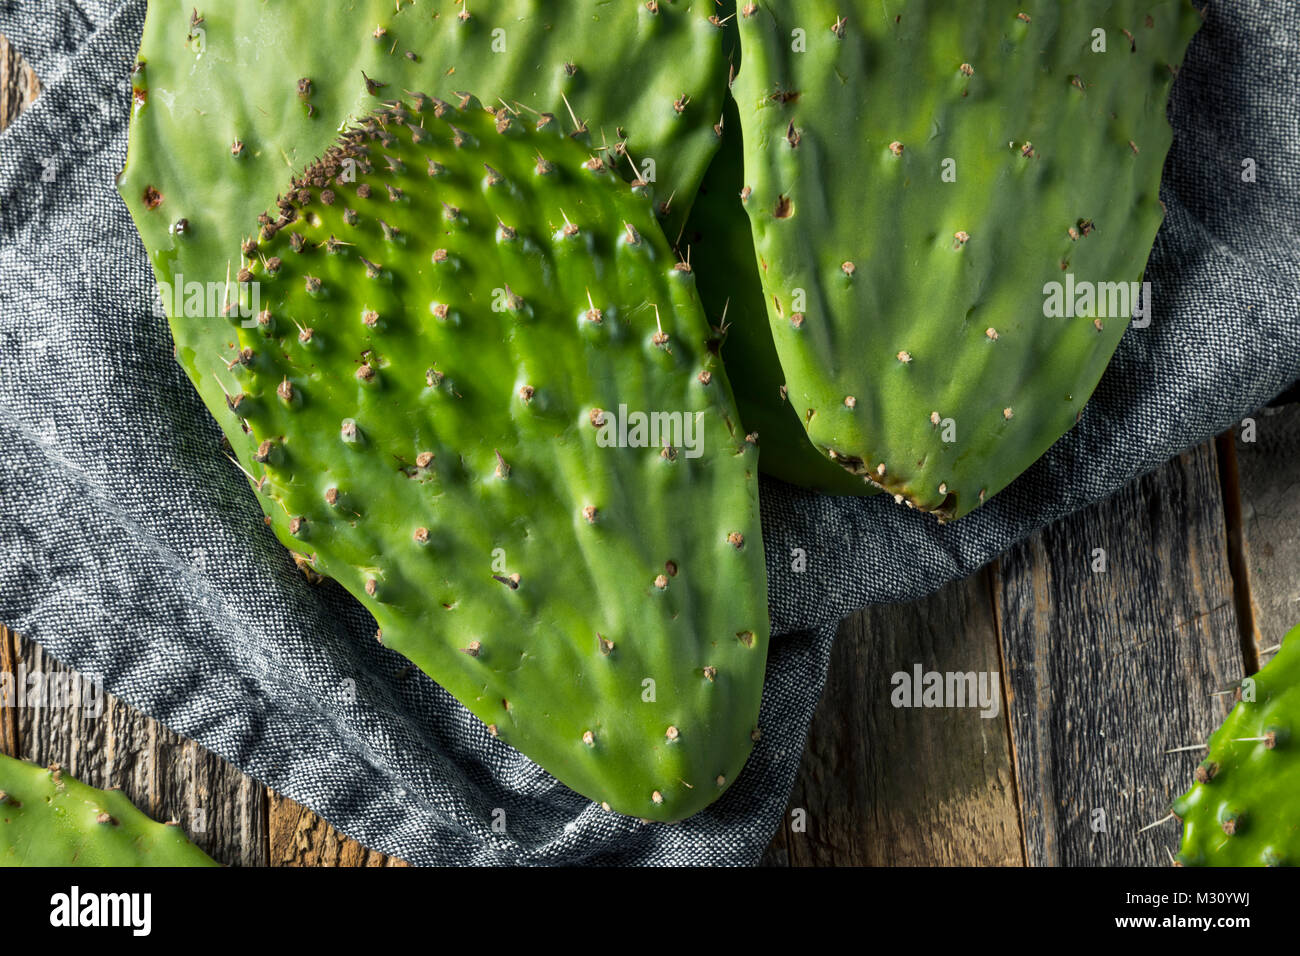 Raw Green Organic Cactus Leaf Fruit Ready to Cook - Stock Image